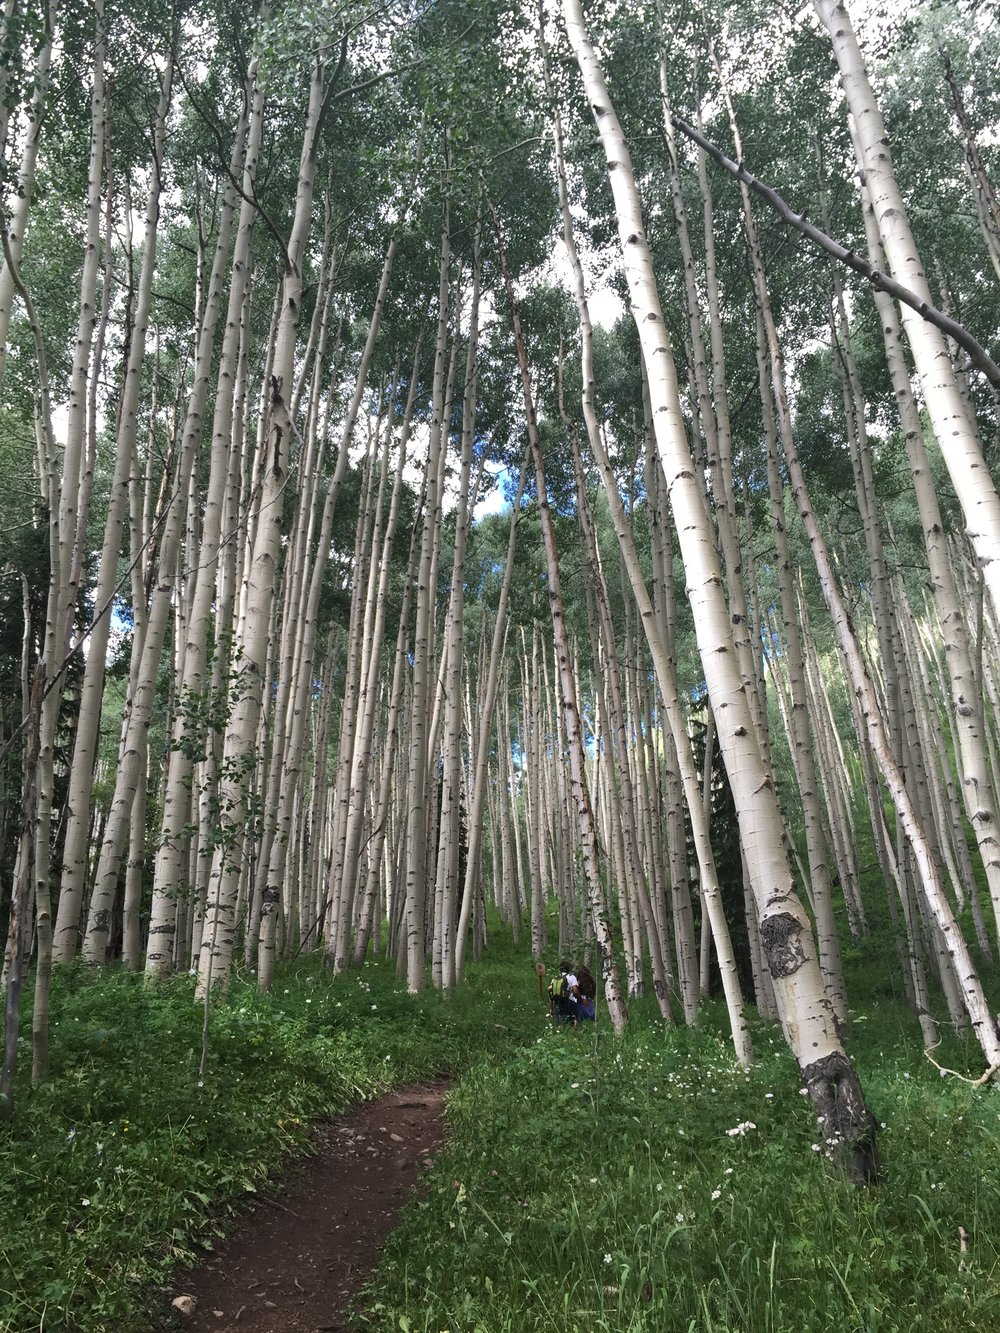 A stand of aspen trees and a hiking path.